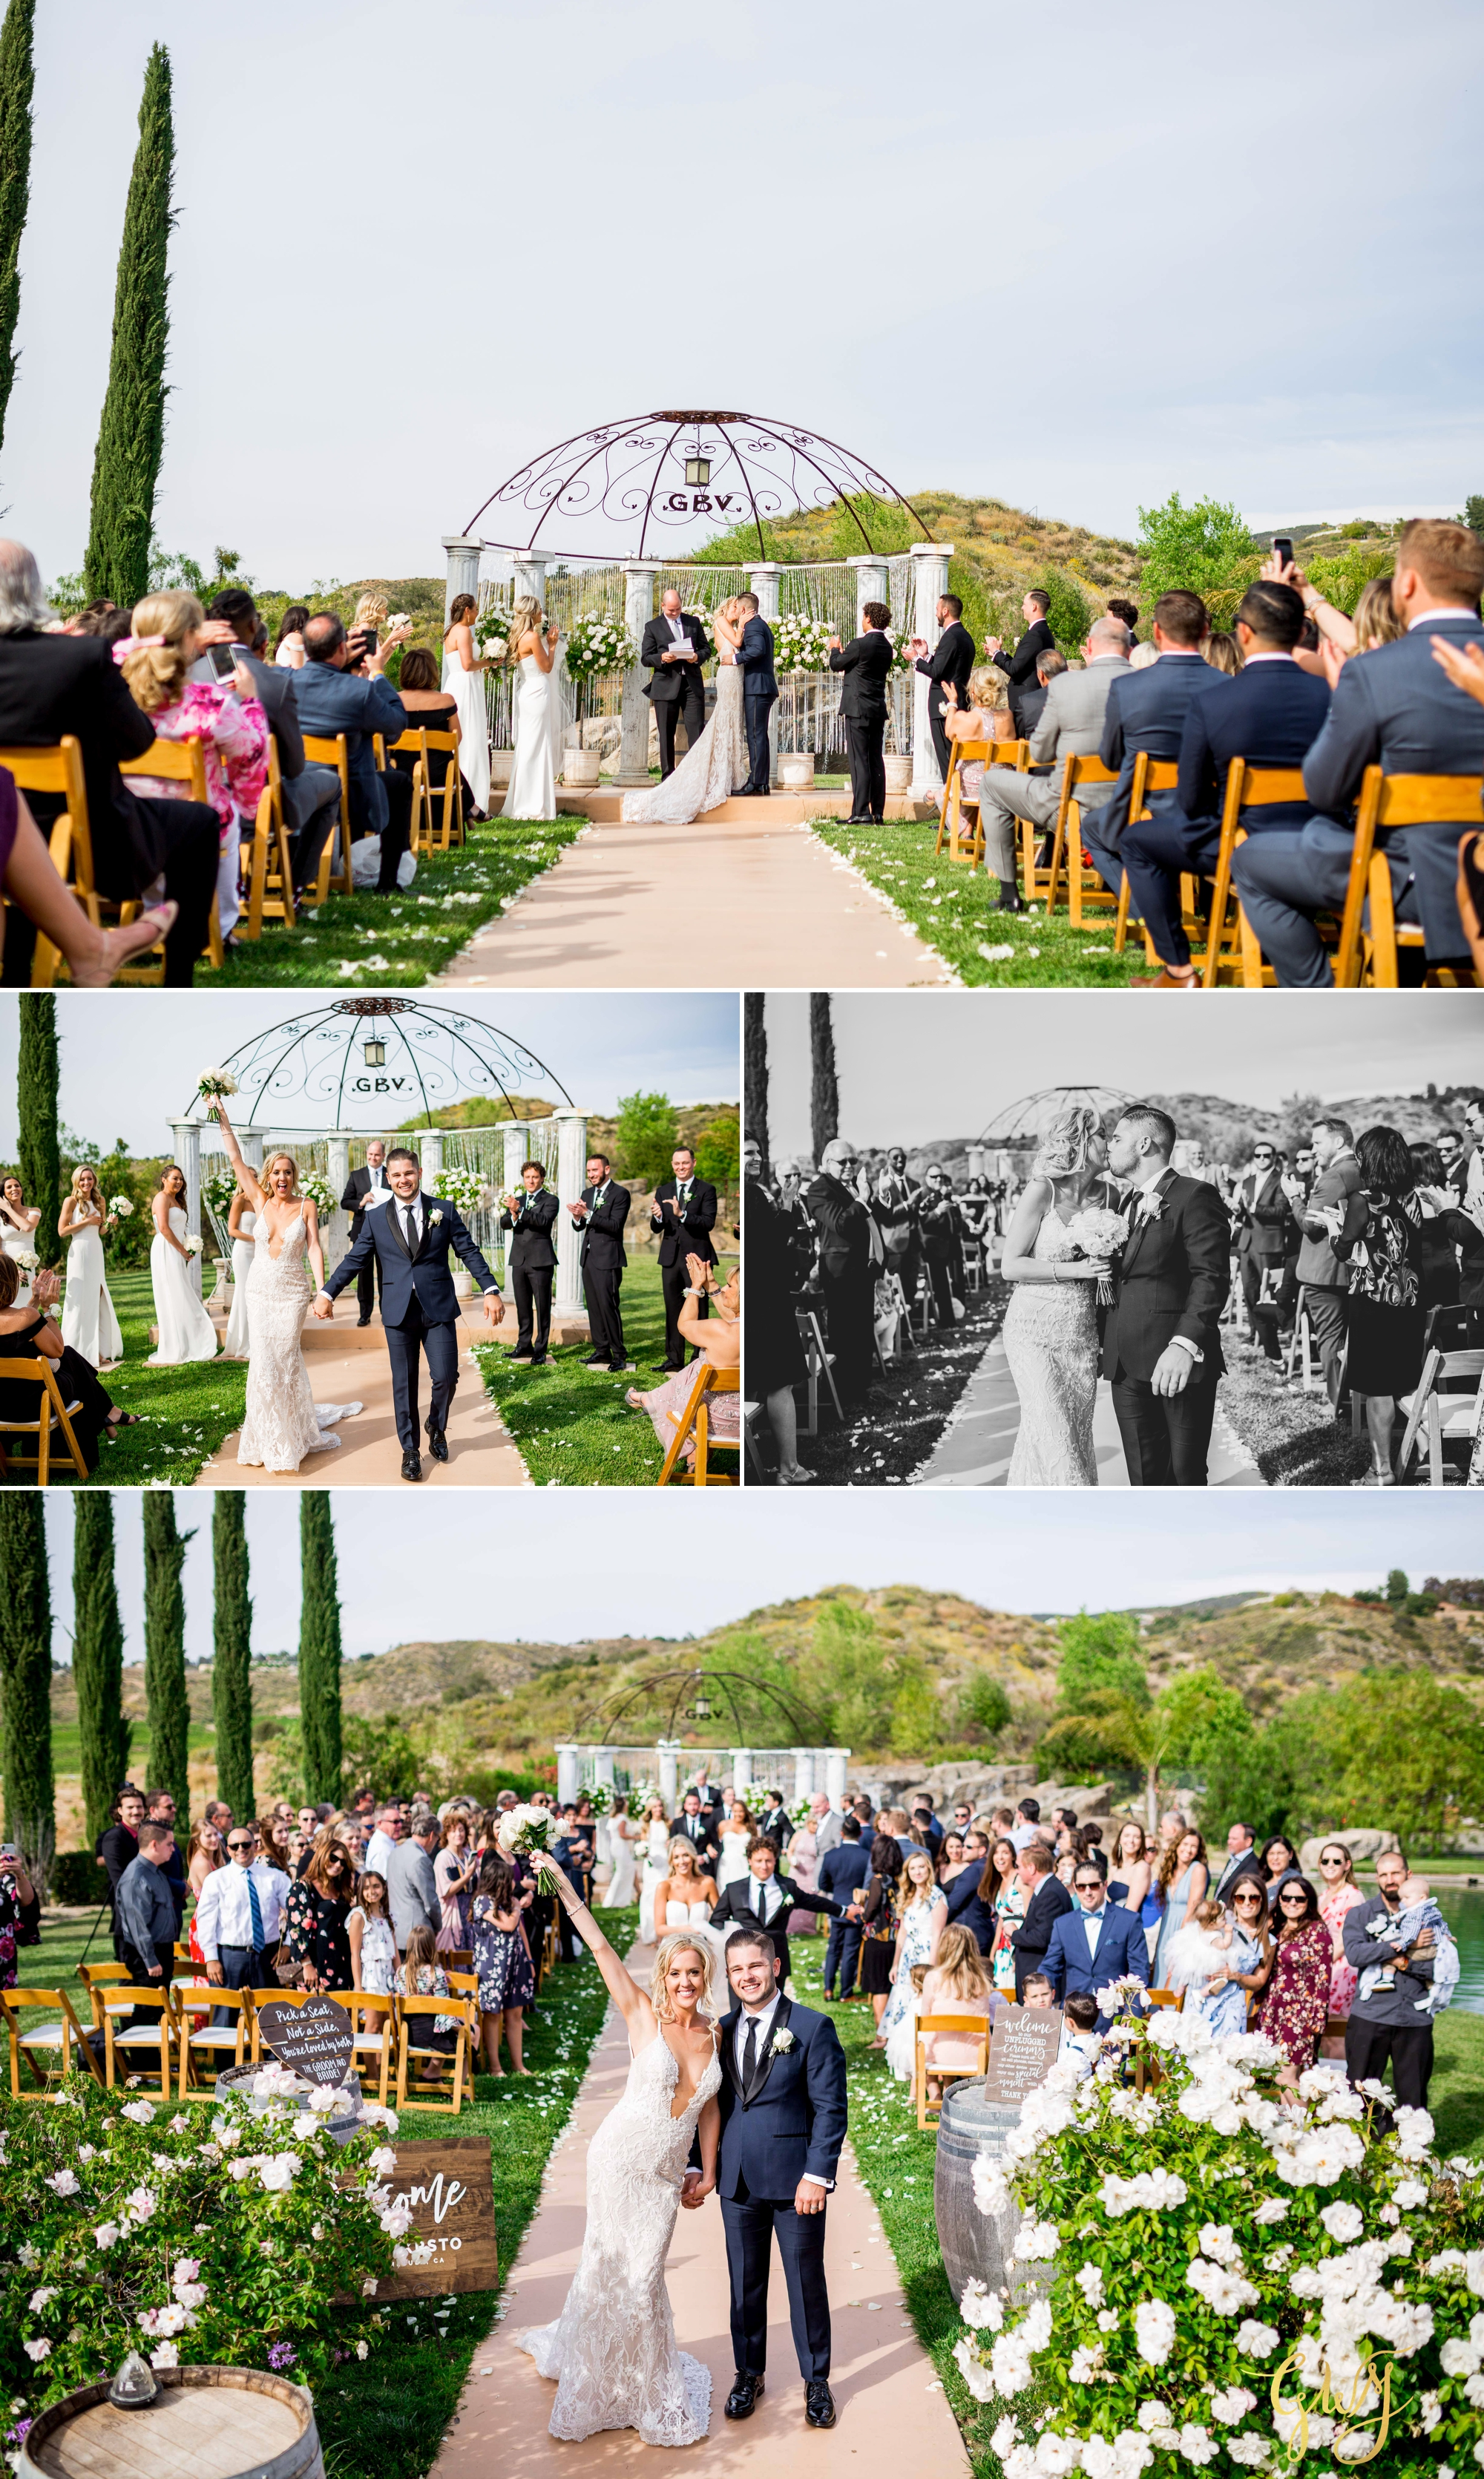 Kristen + Krsto's Romantic Temecula Winery Spring Wedding by Glass Woods Media 34.jpg